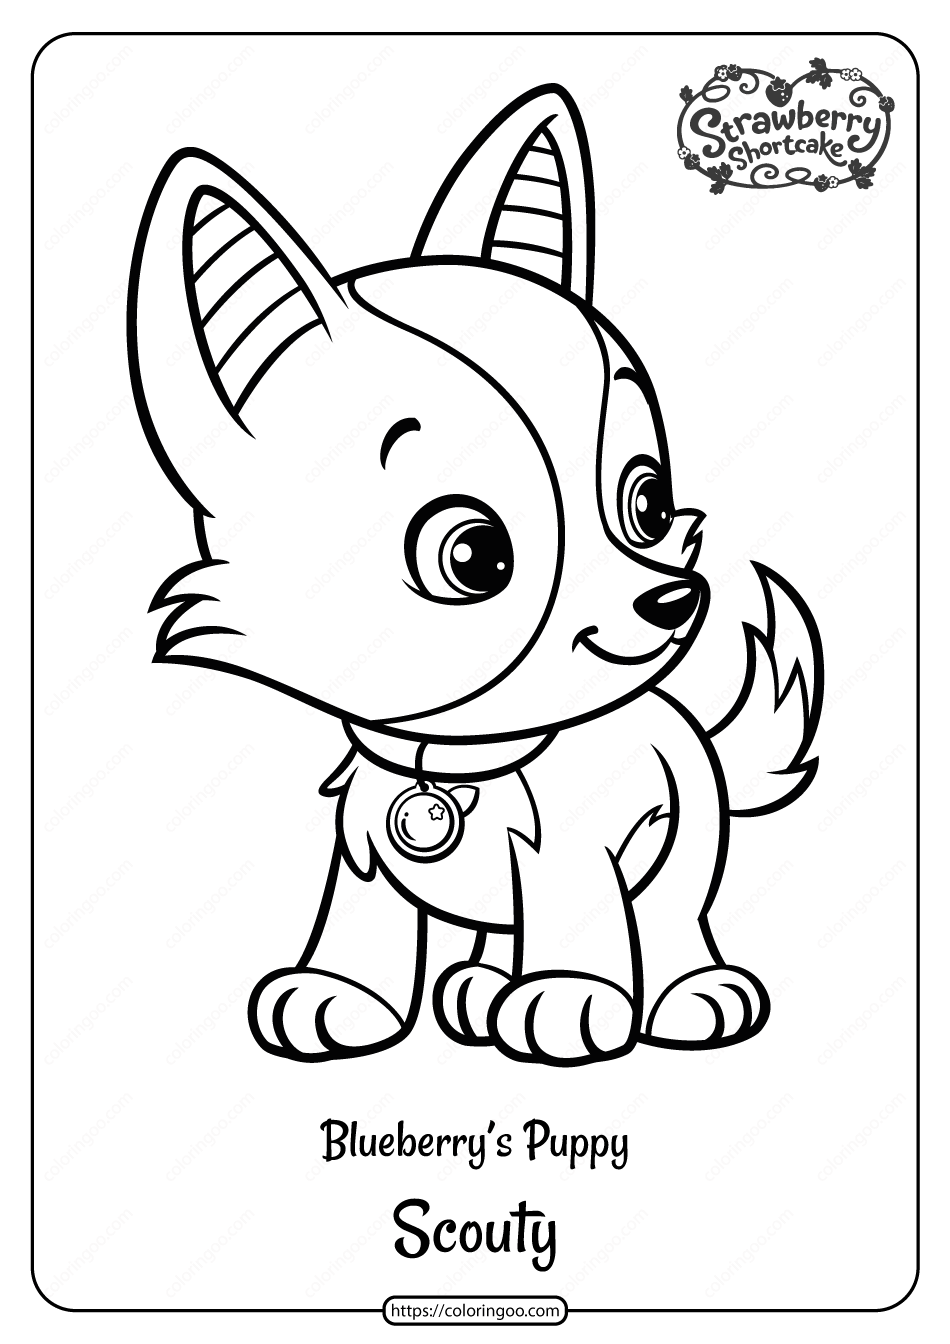 Printable Blueberry S Puppy Scouty Pdf Coloring Page In 2020 Strawberry Shortcake Coloring Pages Strawberry Shortcake Pictures Dog Coloring Page